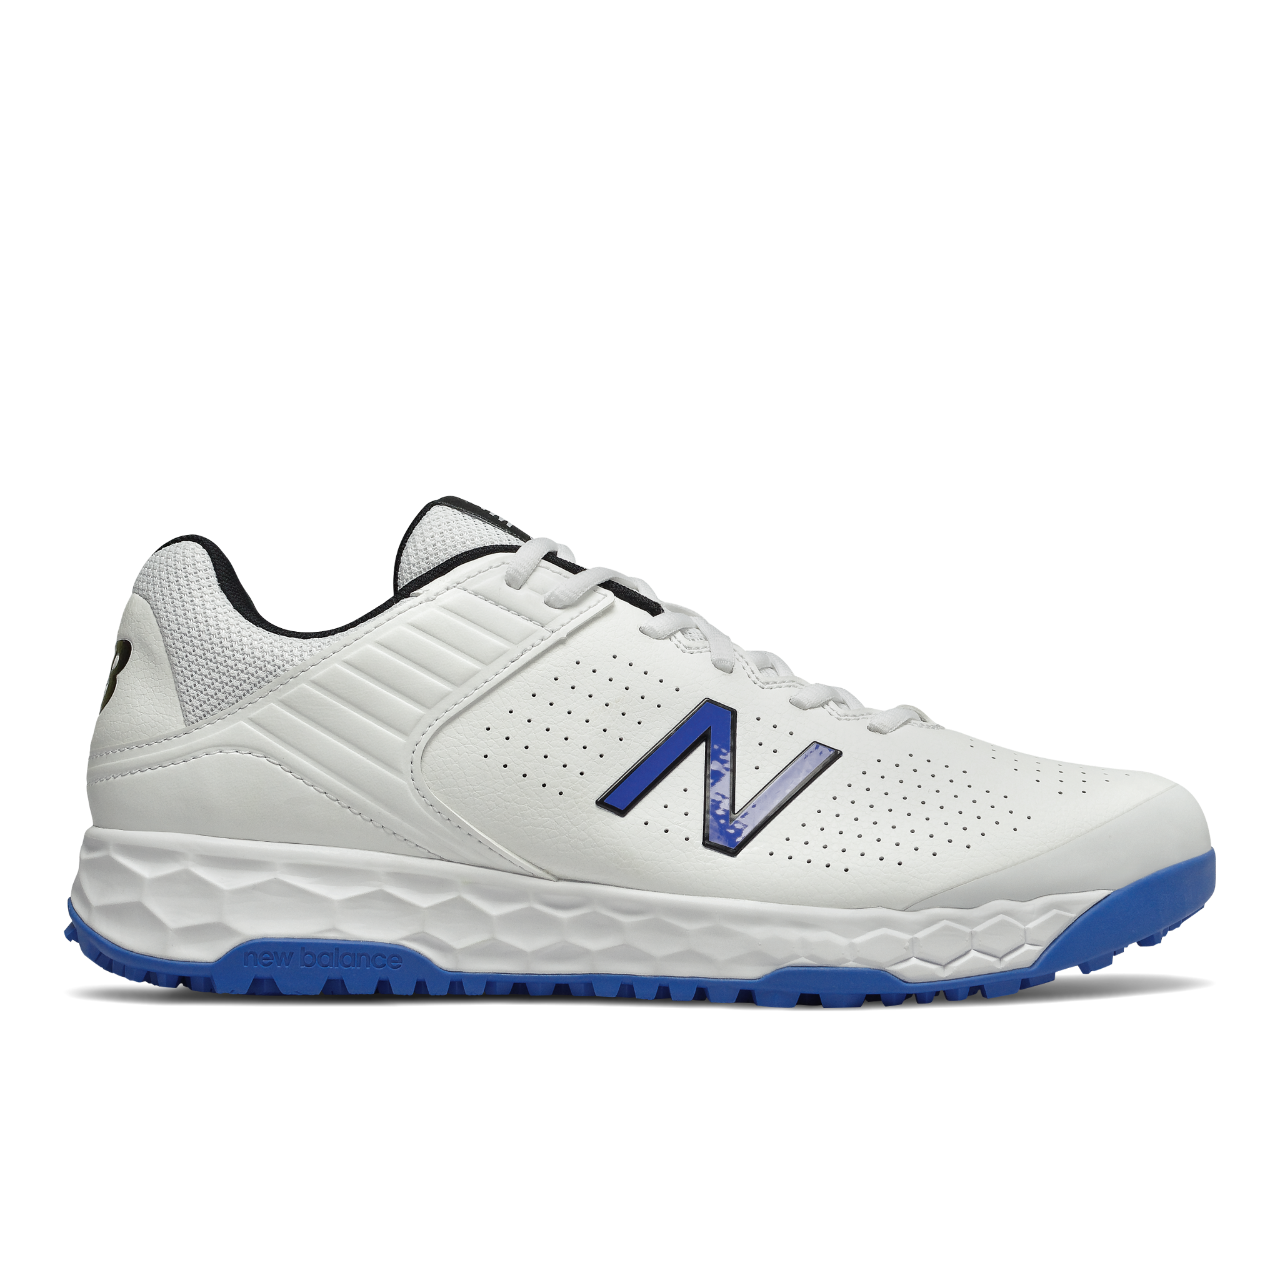 2021 New Balance CK4020 C4 Cricket Shoes